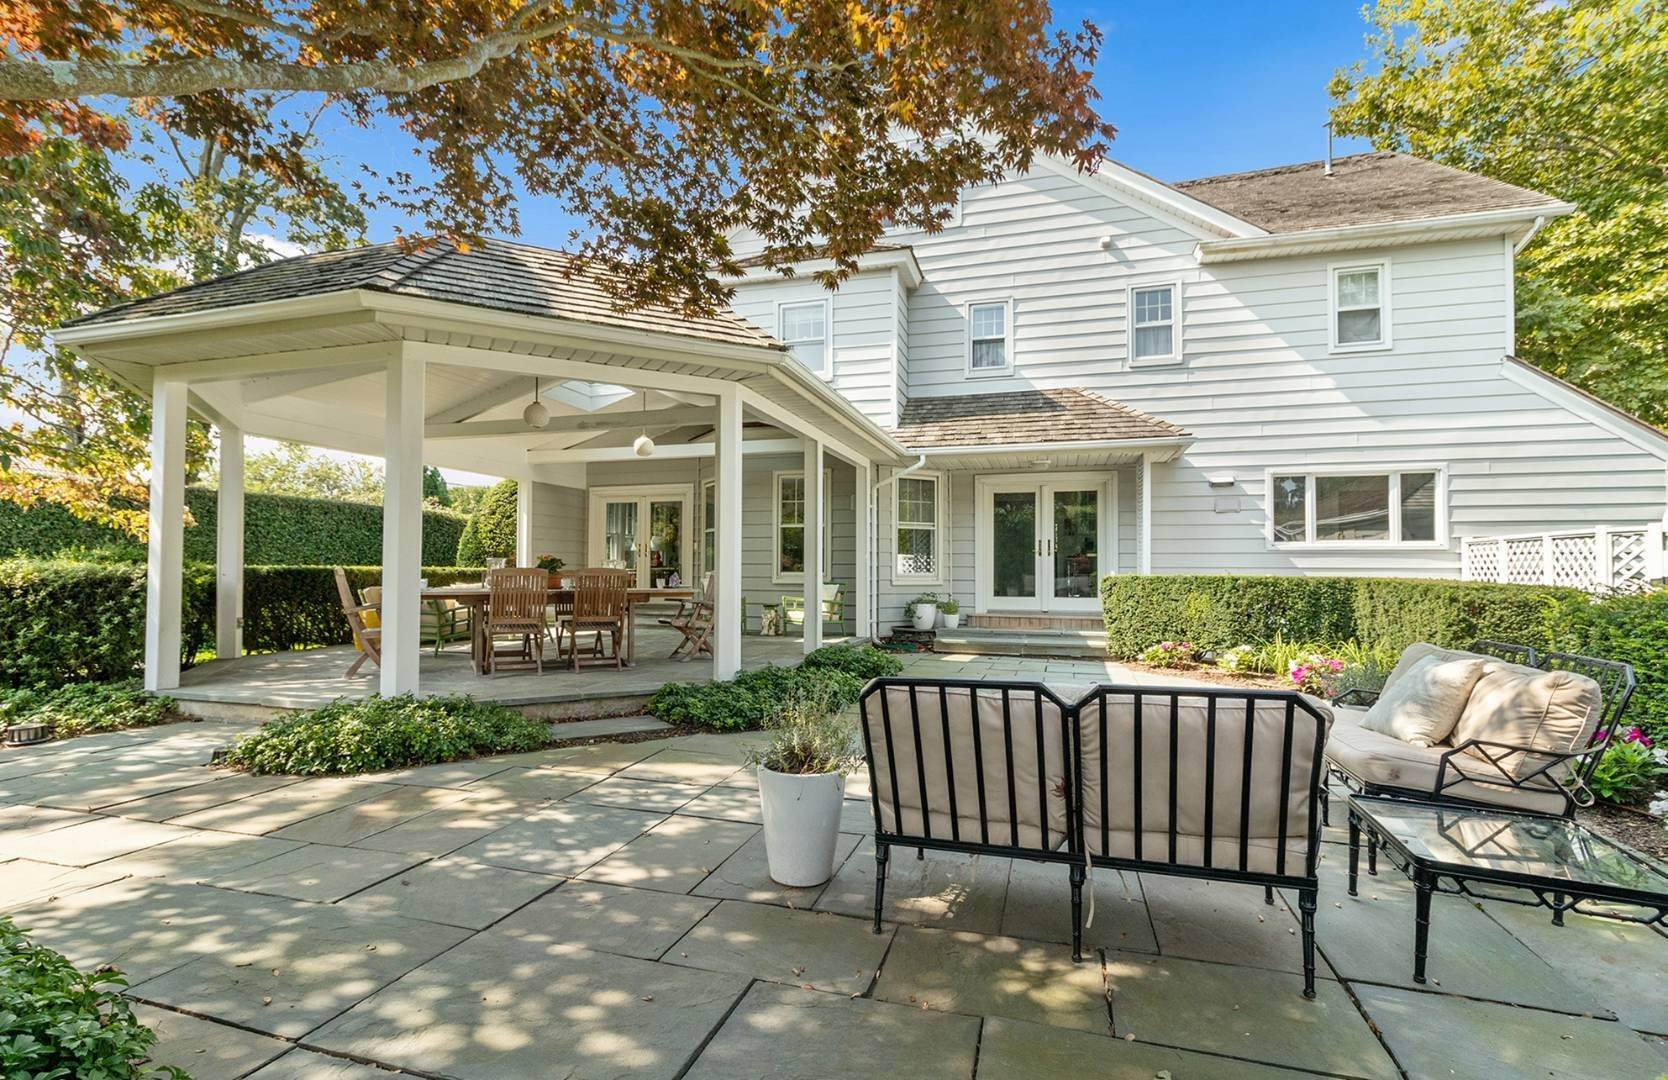 Single Family Home at Beautifully Renovated In The Village Southampton, NY 11968